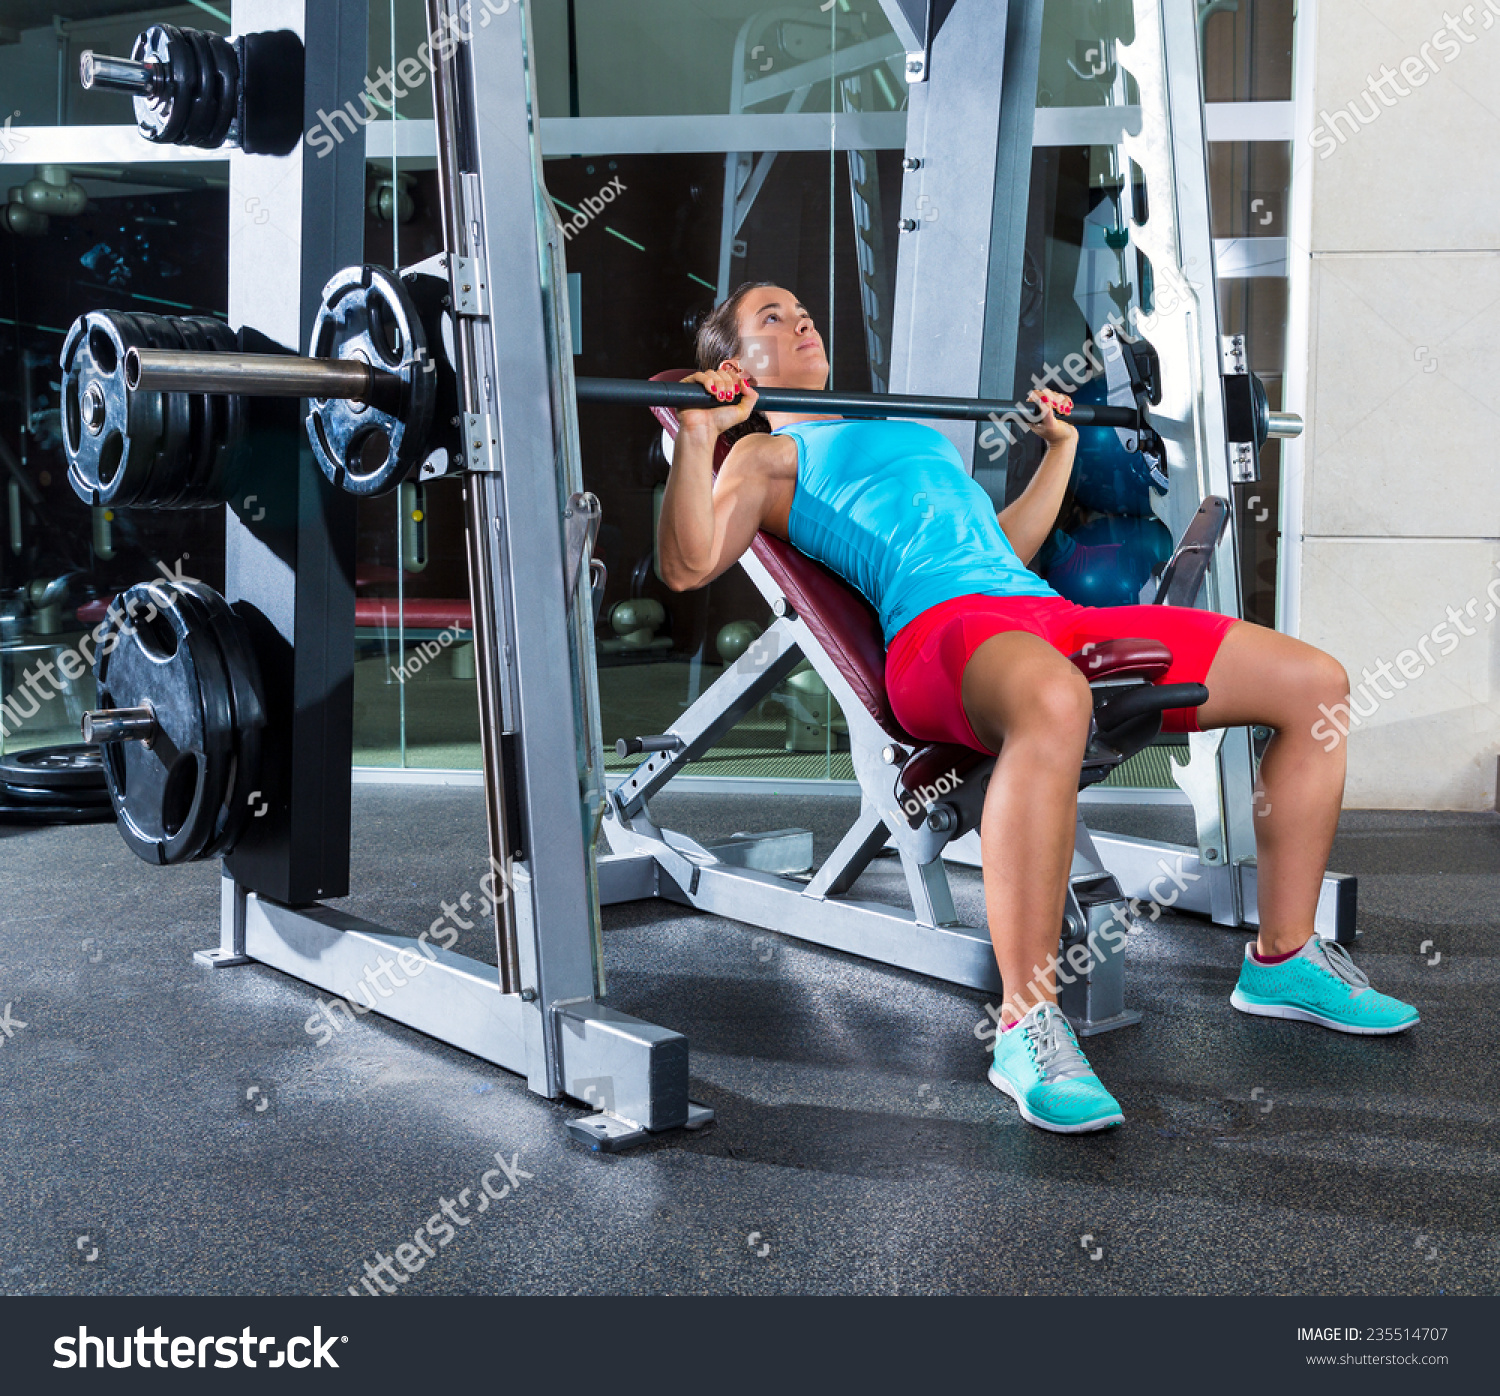 Strongest Bench Press: Strongest Woman Bench Press